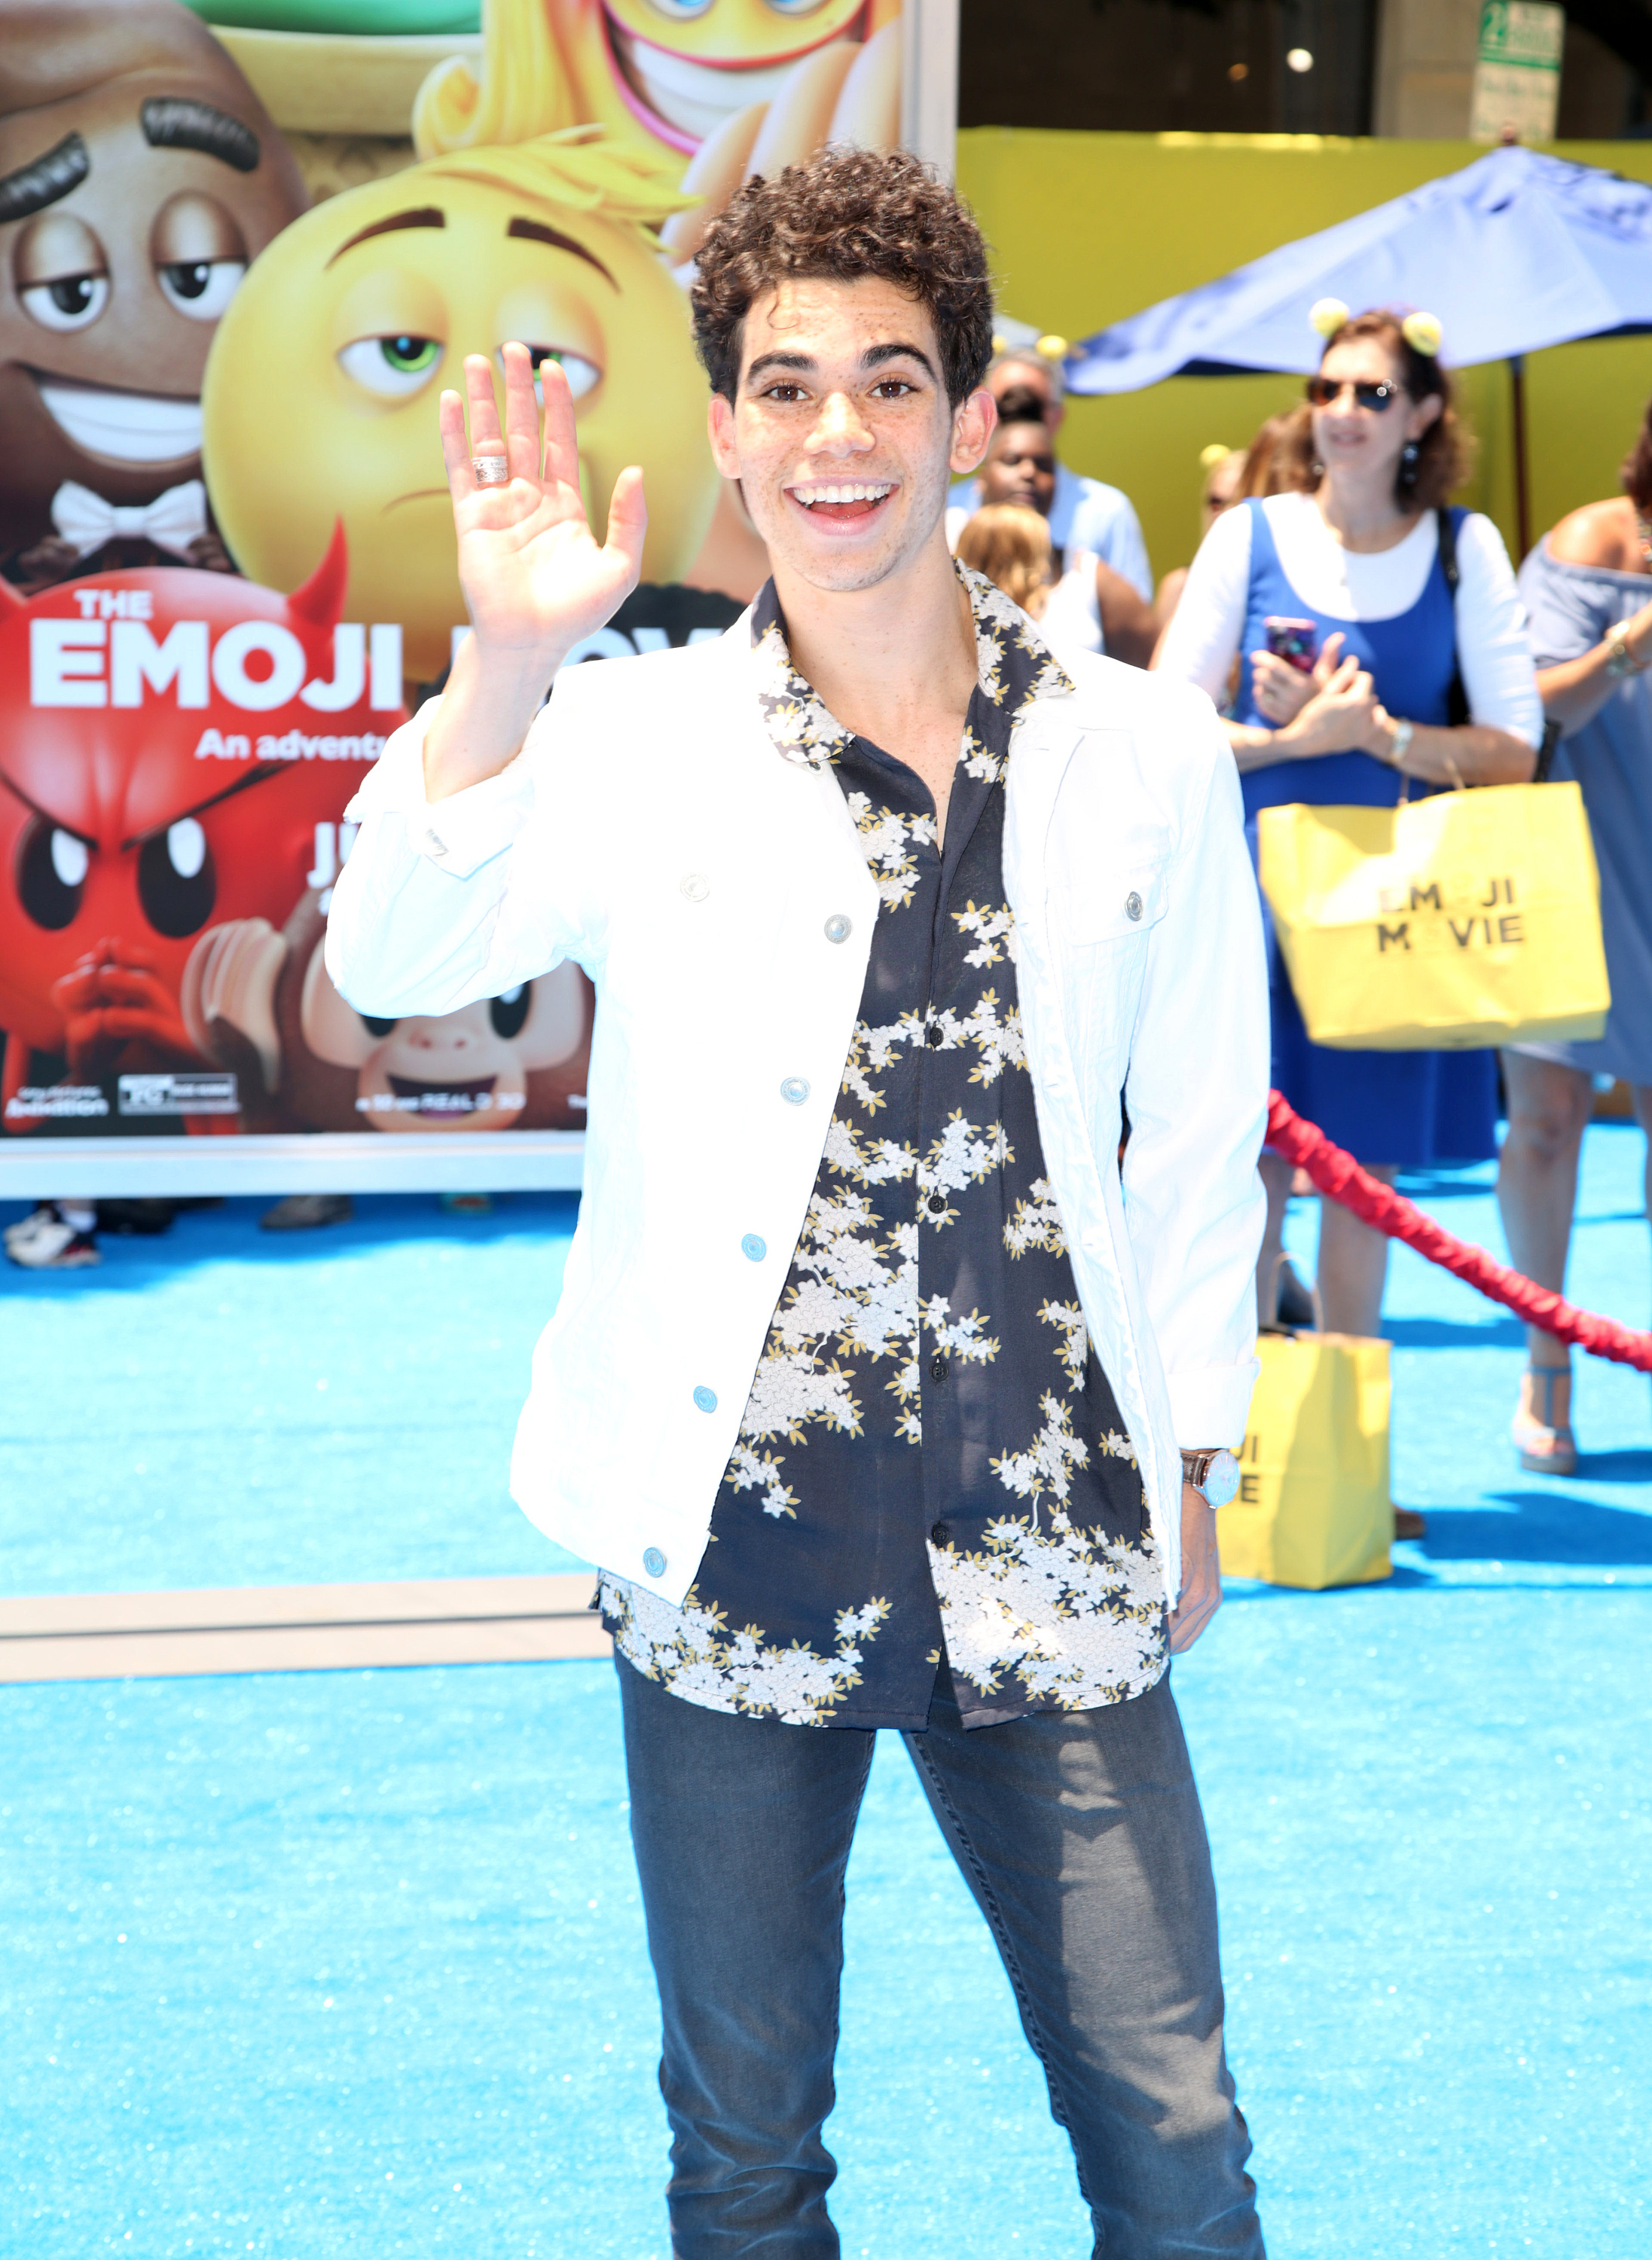 Celebrities attend The World Premiere of 'The Emoji Movie' at Regency Village Theatre in Westwood                                    Featuring: Cameron Boyce                  Where: Los Angeles, California, United States                  When: 23 Jul 2017                  Credit: Brian To/WENN.com